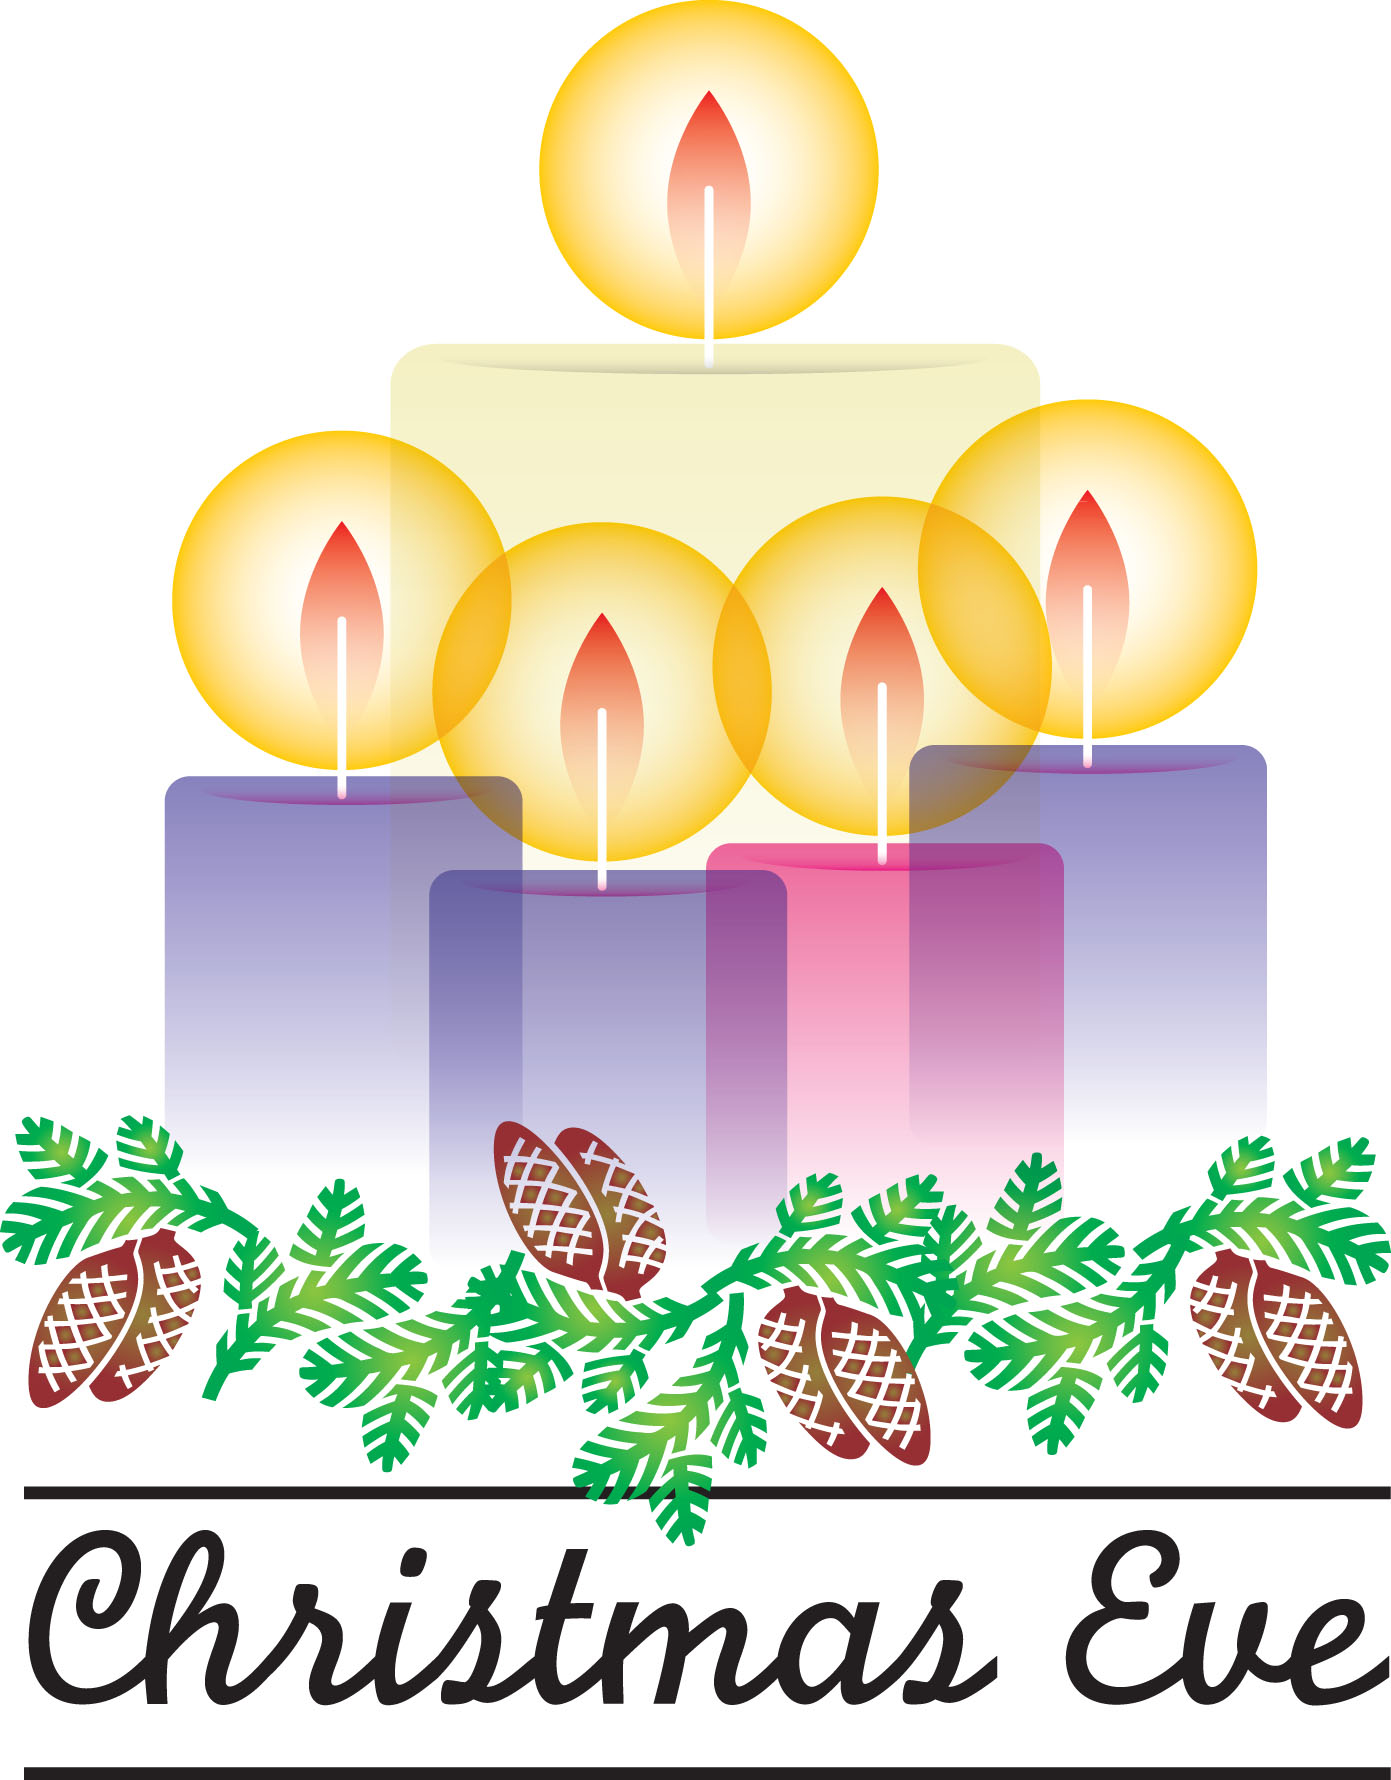 Christmas Eve Clipart.Advent Clipart Candlelight Service Advent Candlelight